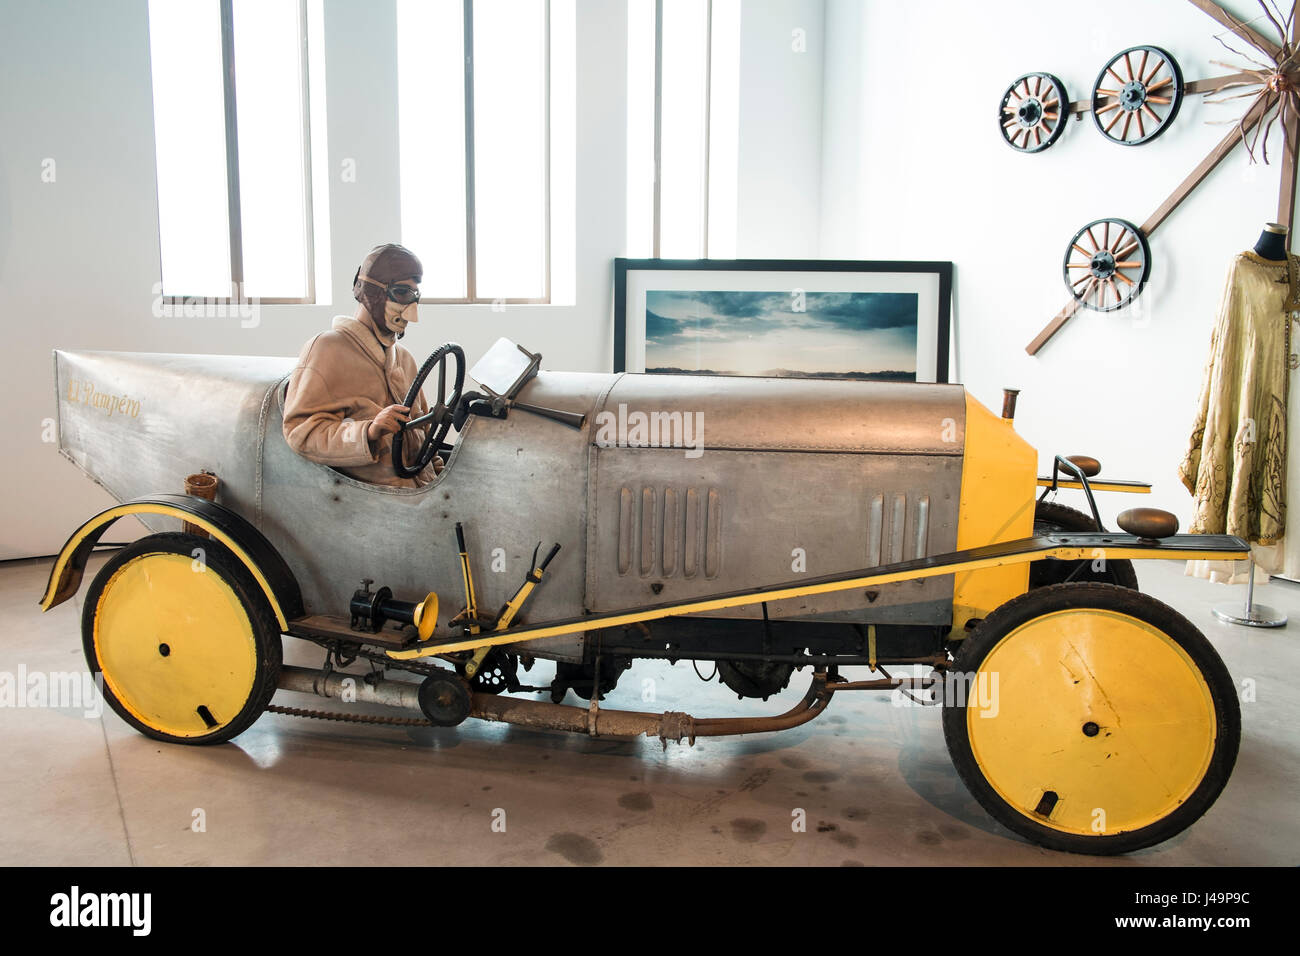 Barron Acroyd 1912 UK, 2 cil. 12 HP 1000 cc. El Pampero. Automobile museum of Málaga, Andalusia, Spain - Stock Image